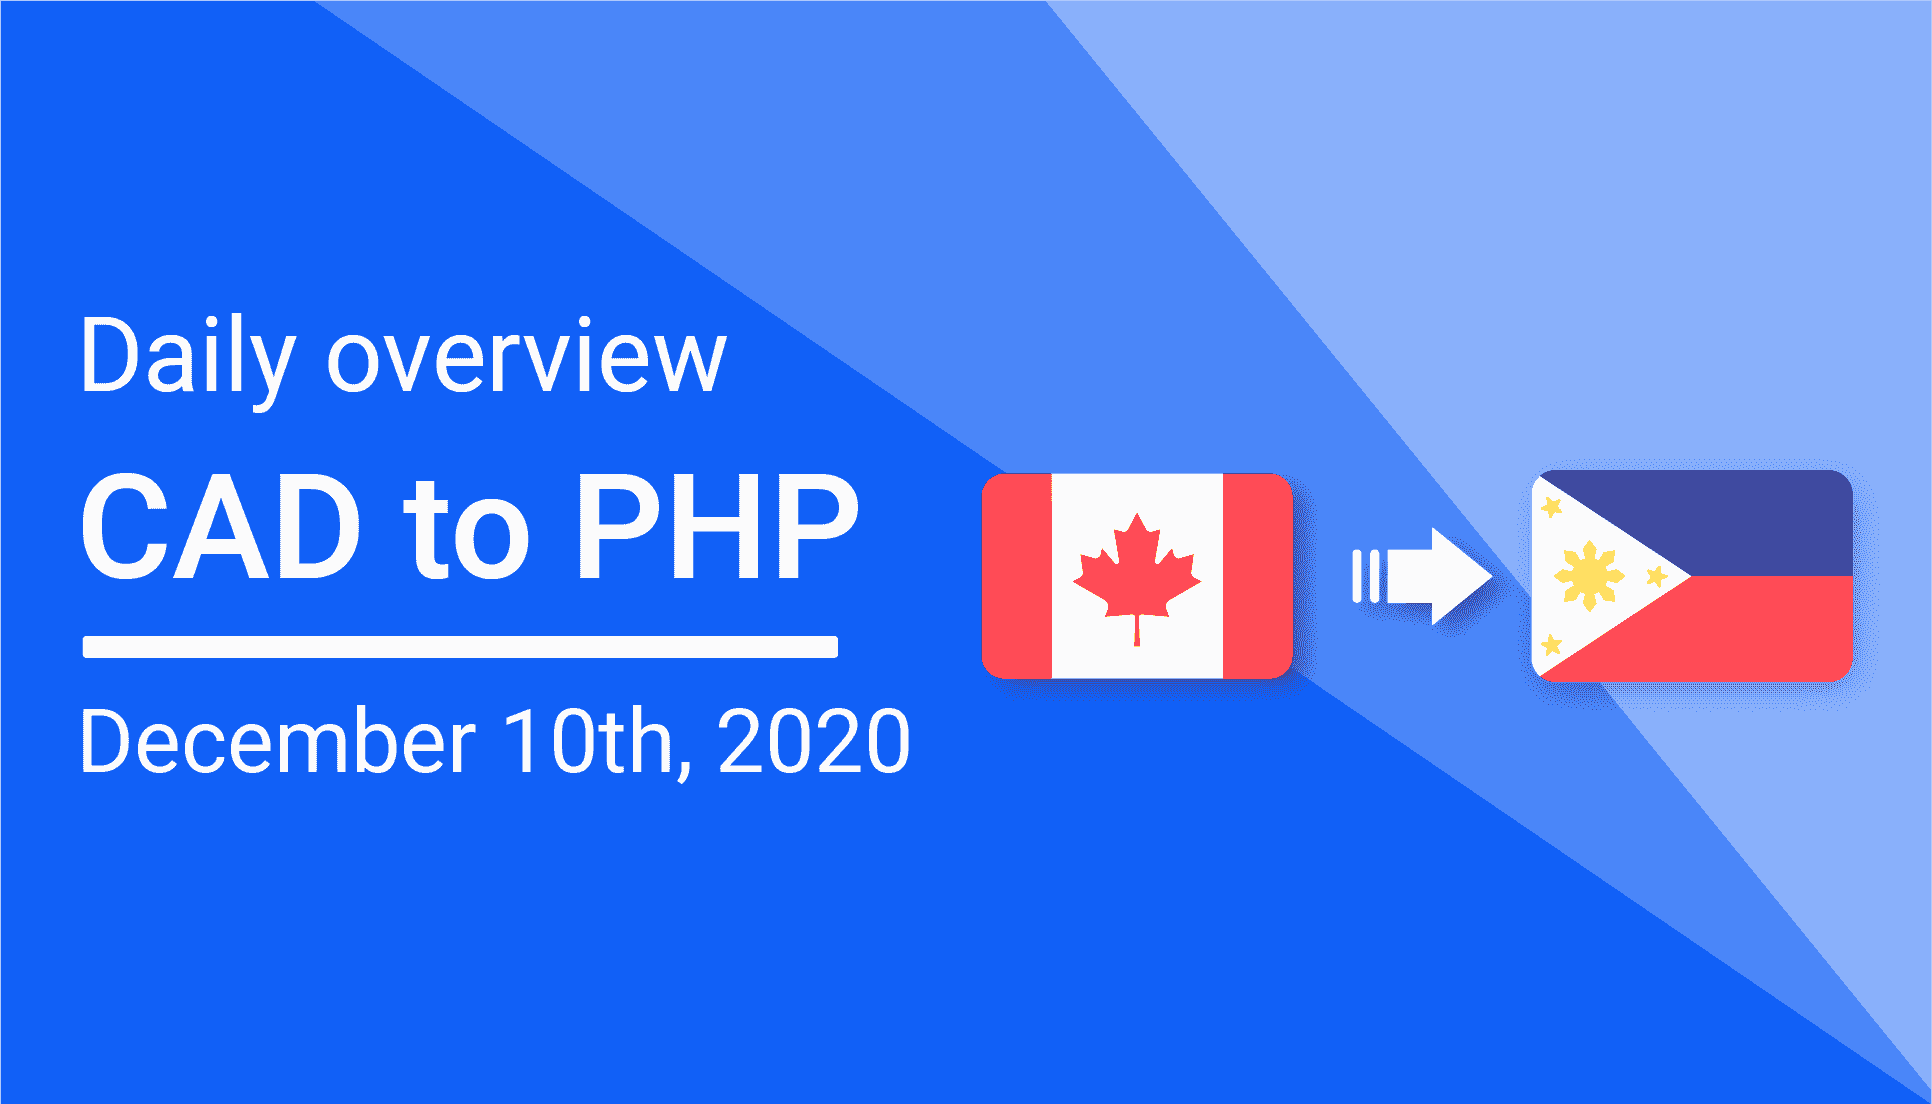 CAD to PHP Daily Overview: December 10th